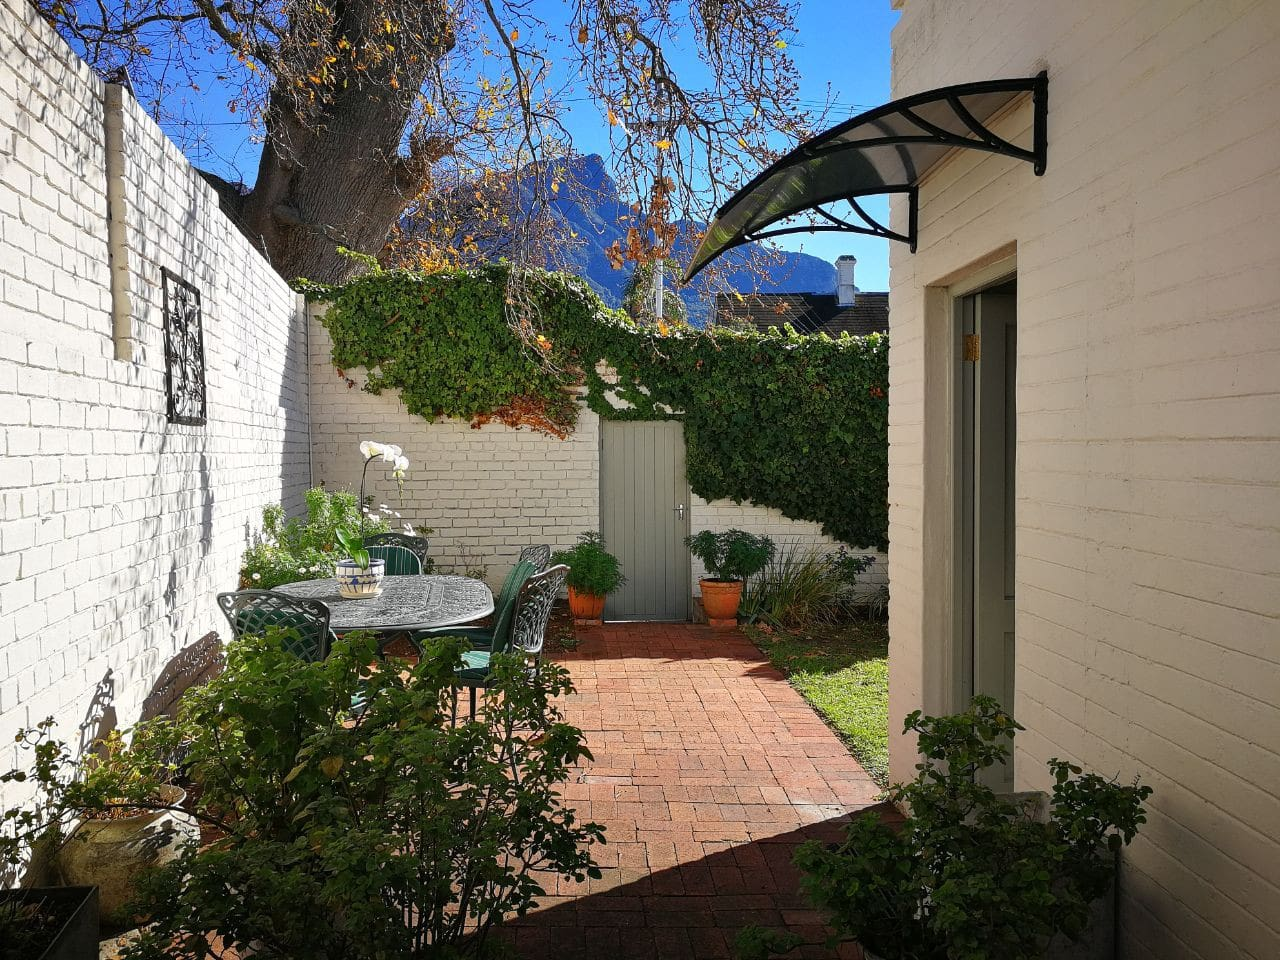 Separate private entrance and patio area